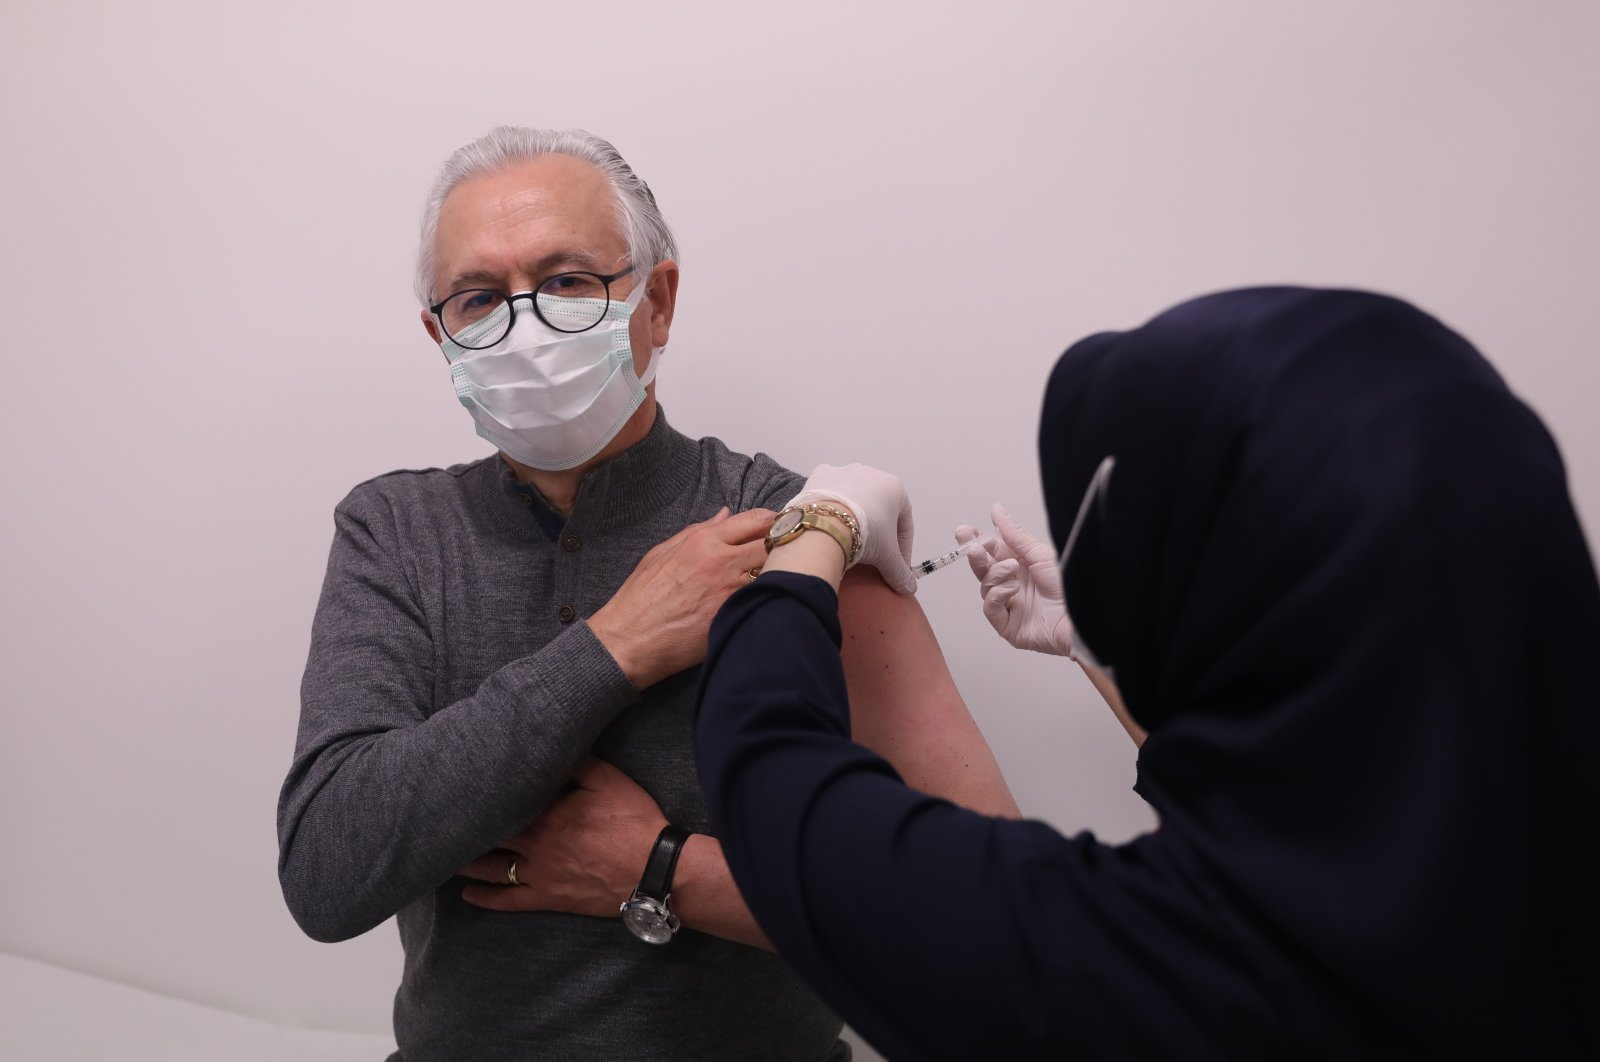 A man gets vaccinated at a hospital, in the capital Ankara, Turkey, March 29, 2021. (AA PHOTO)